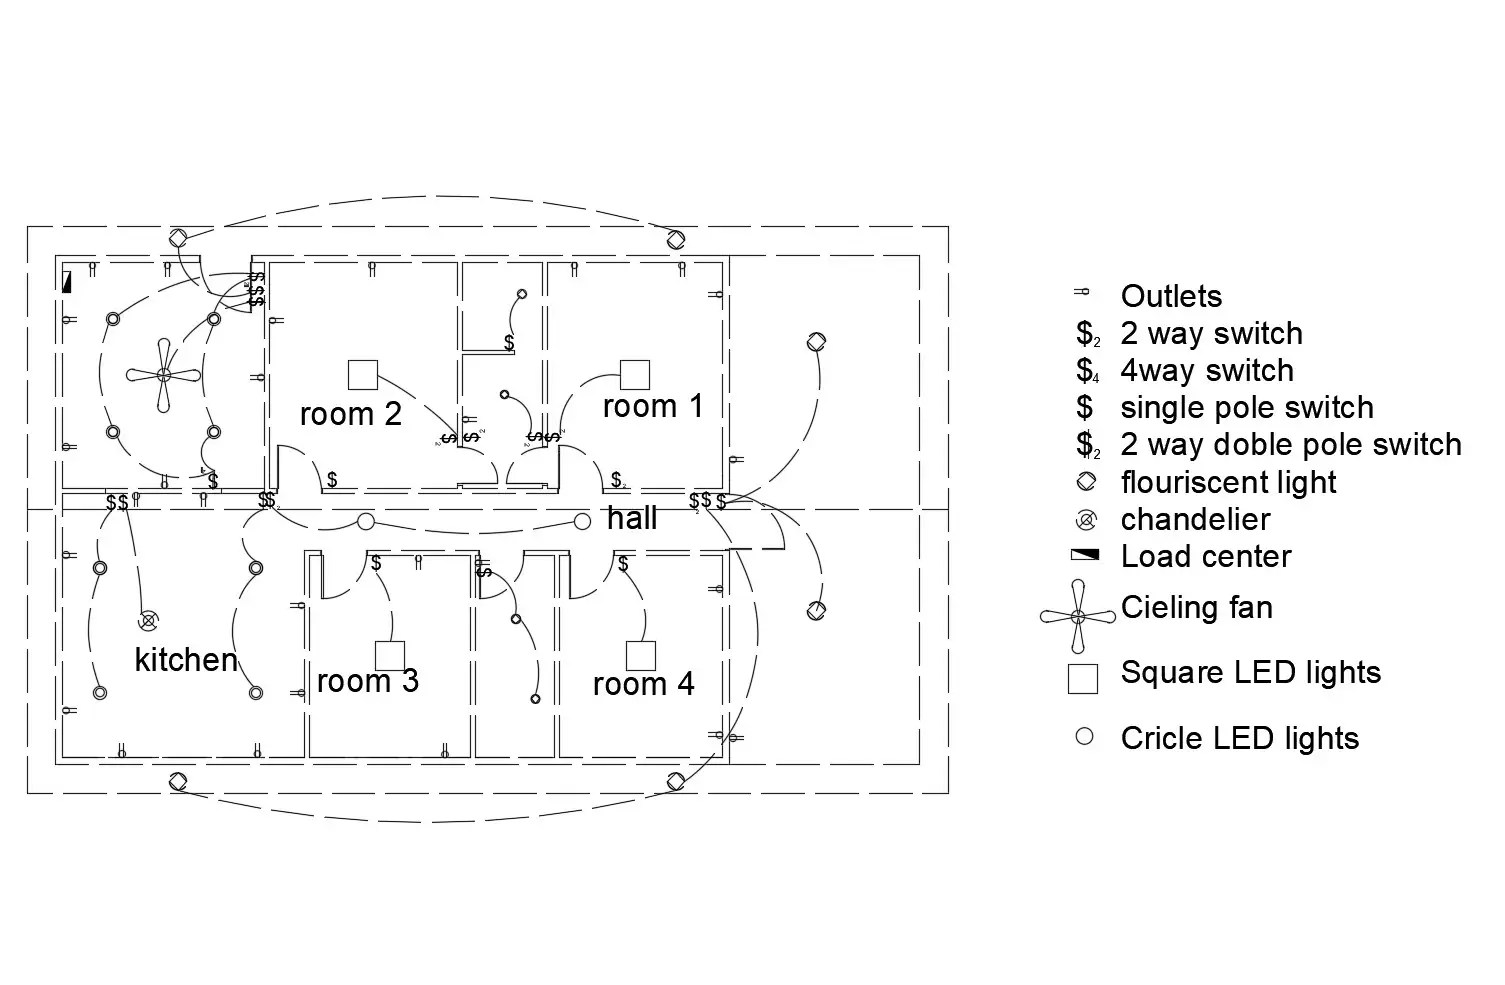 Electric Layout Design Of The House Plan In Dwg File